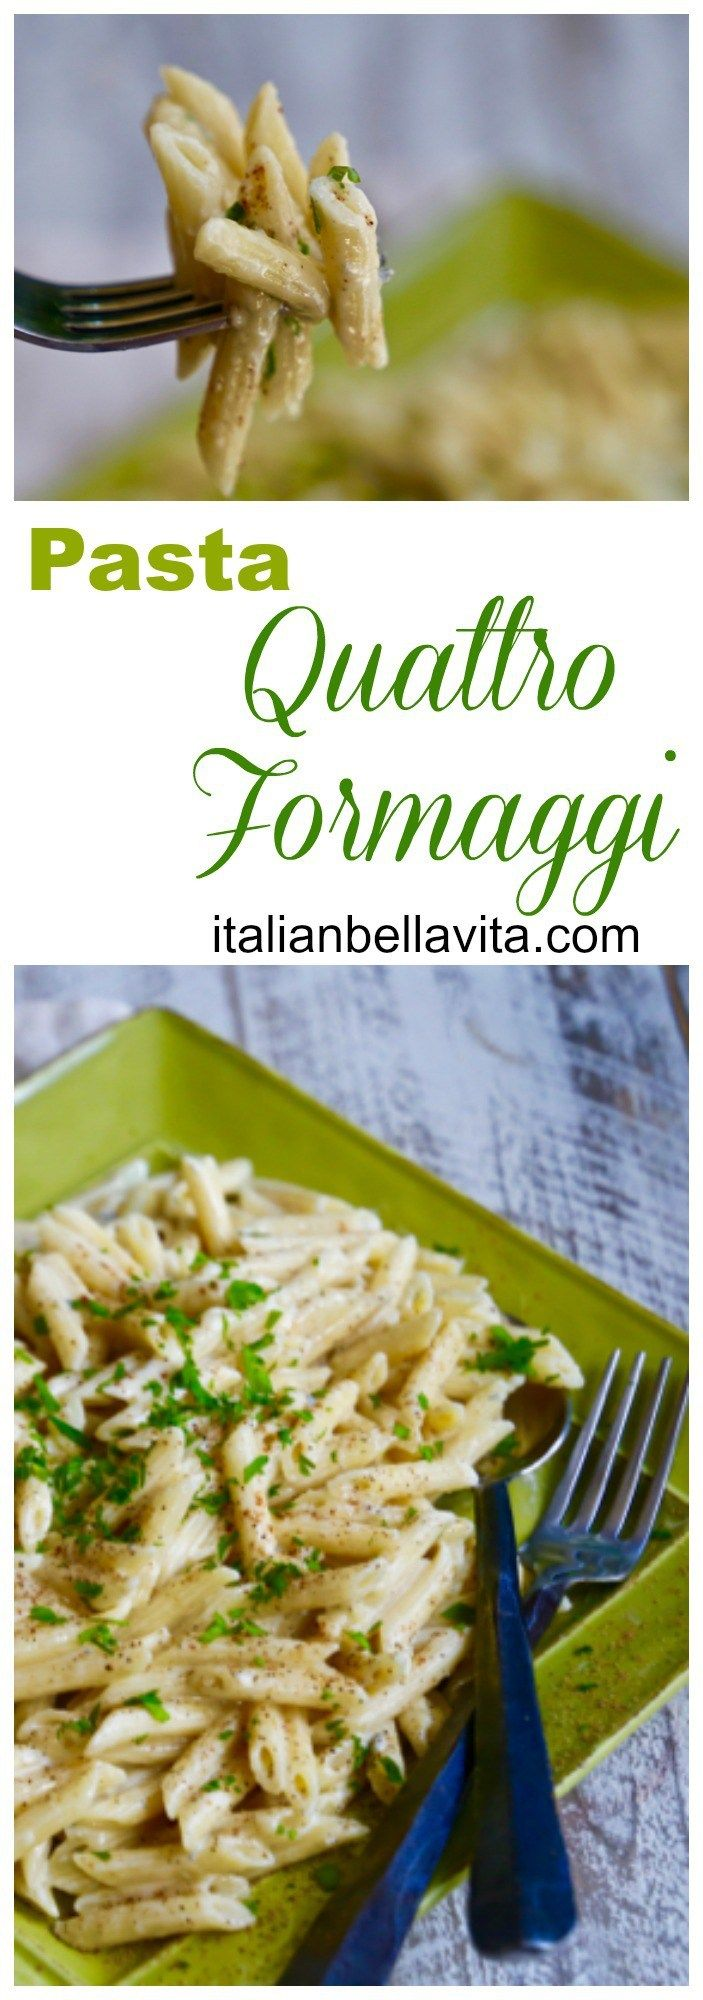 Pasta Quattro Formaggi for #SundaySupper Super EASY and Super DELICIOUS 4-Cheese Pasta!